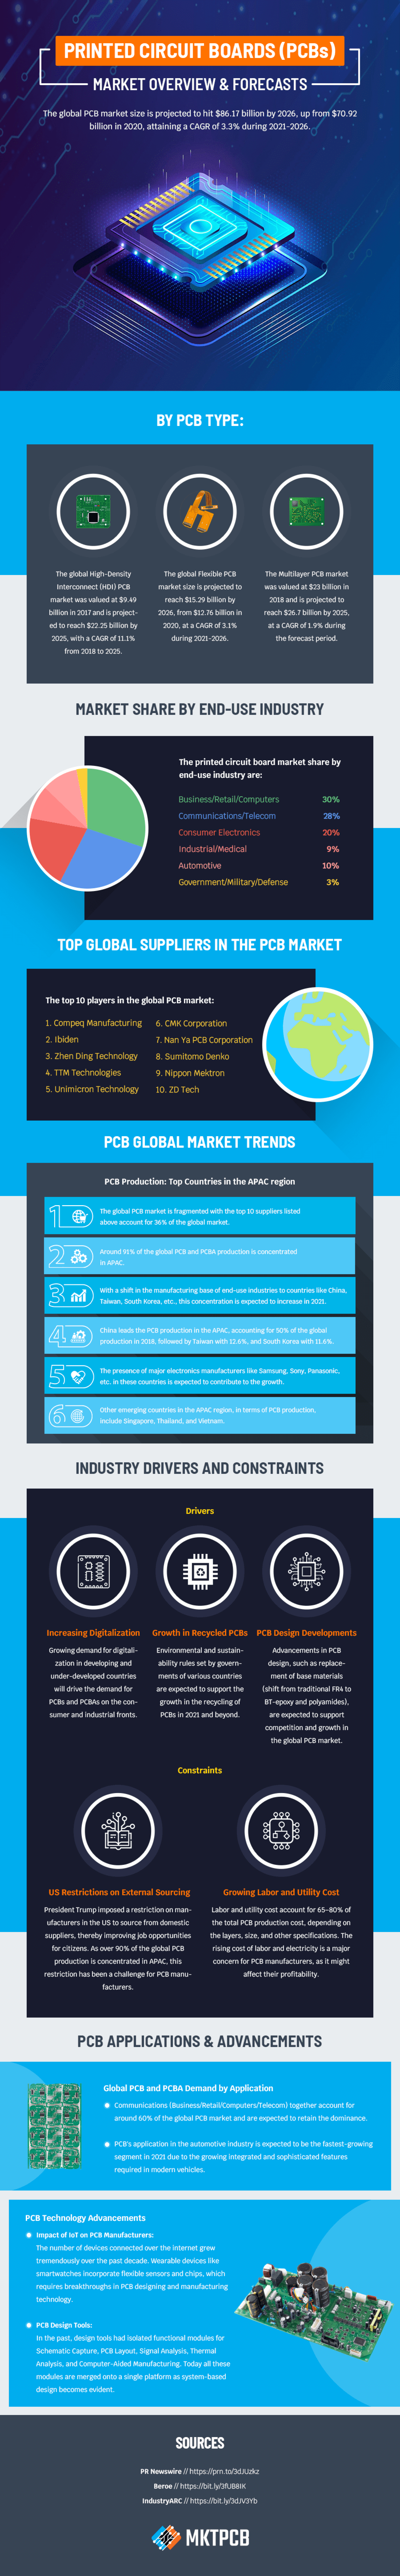 Global PCB market infographic